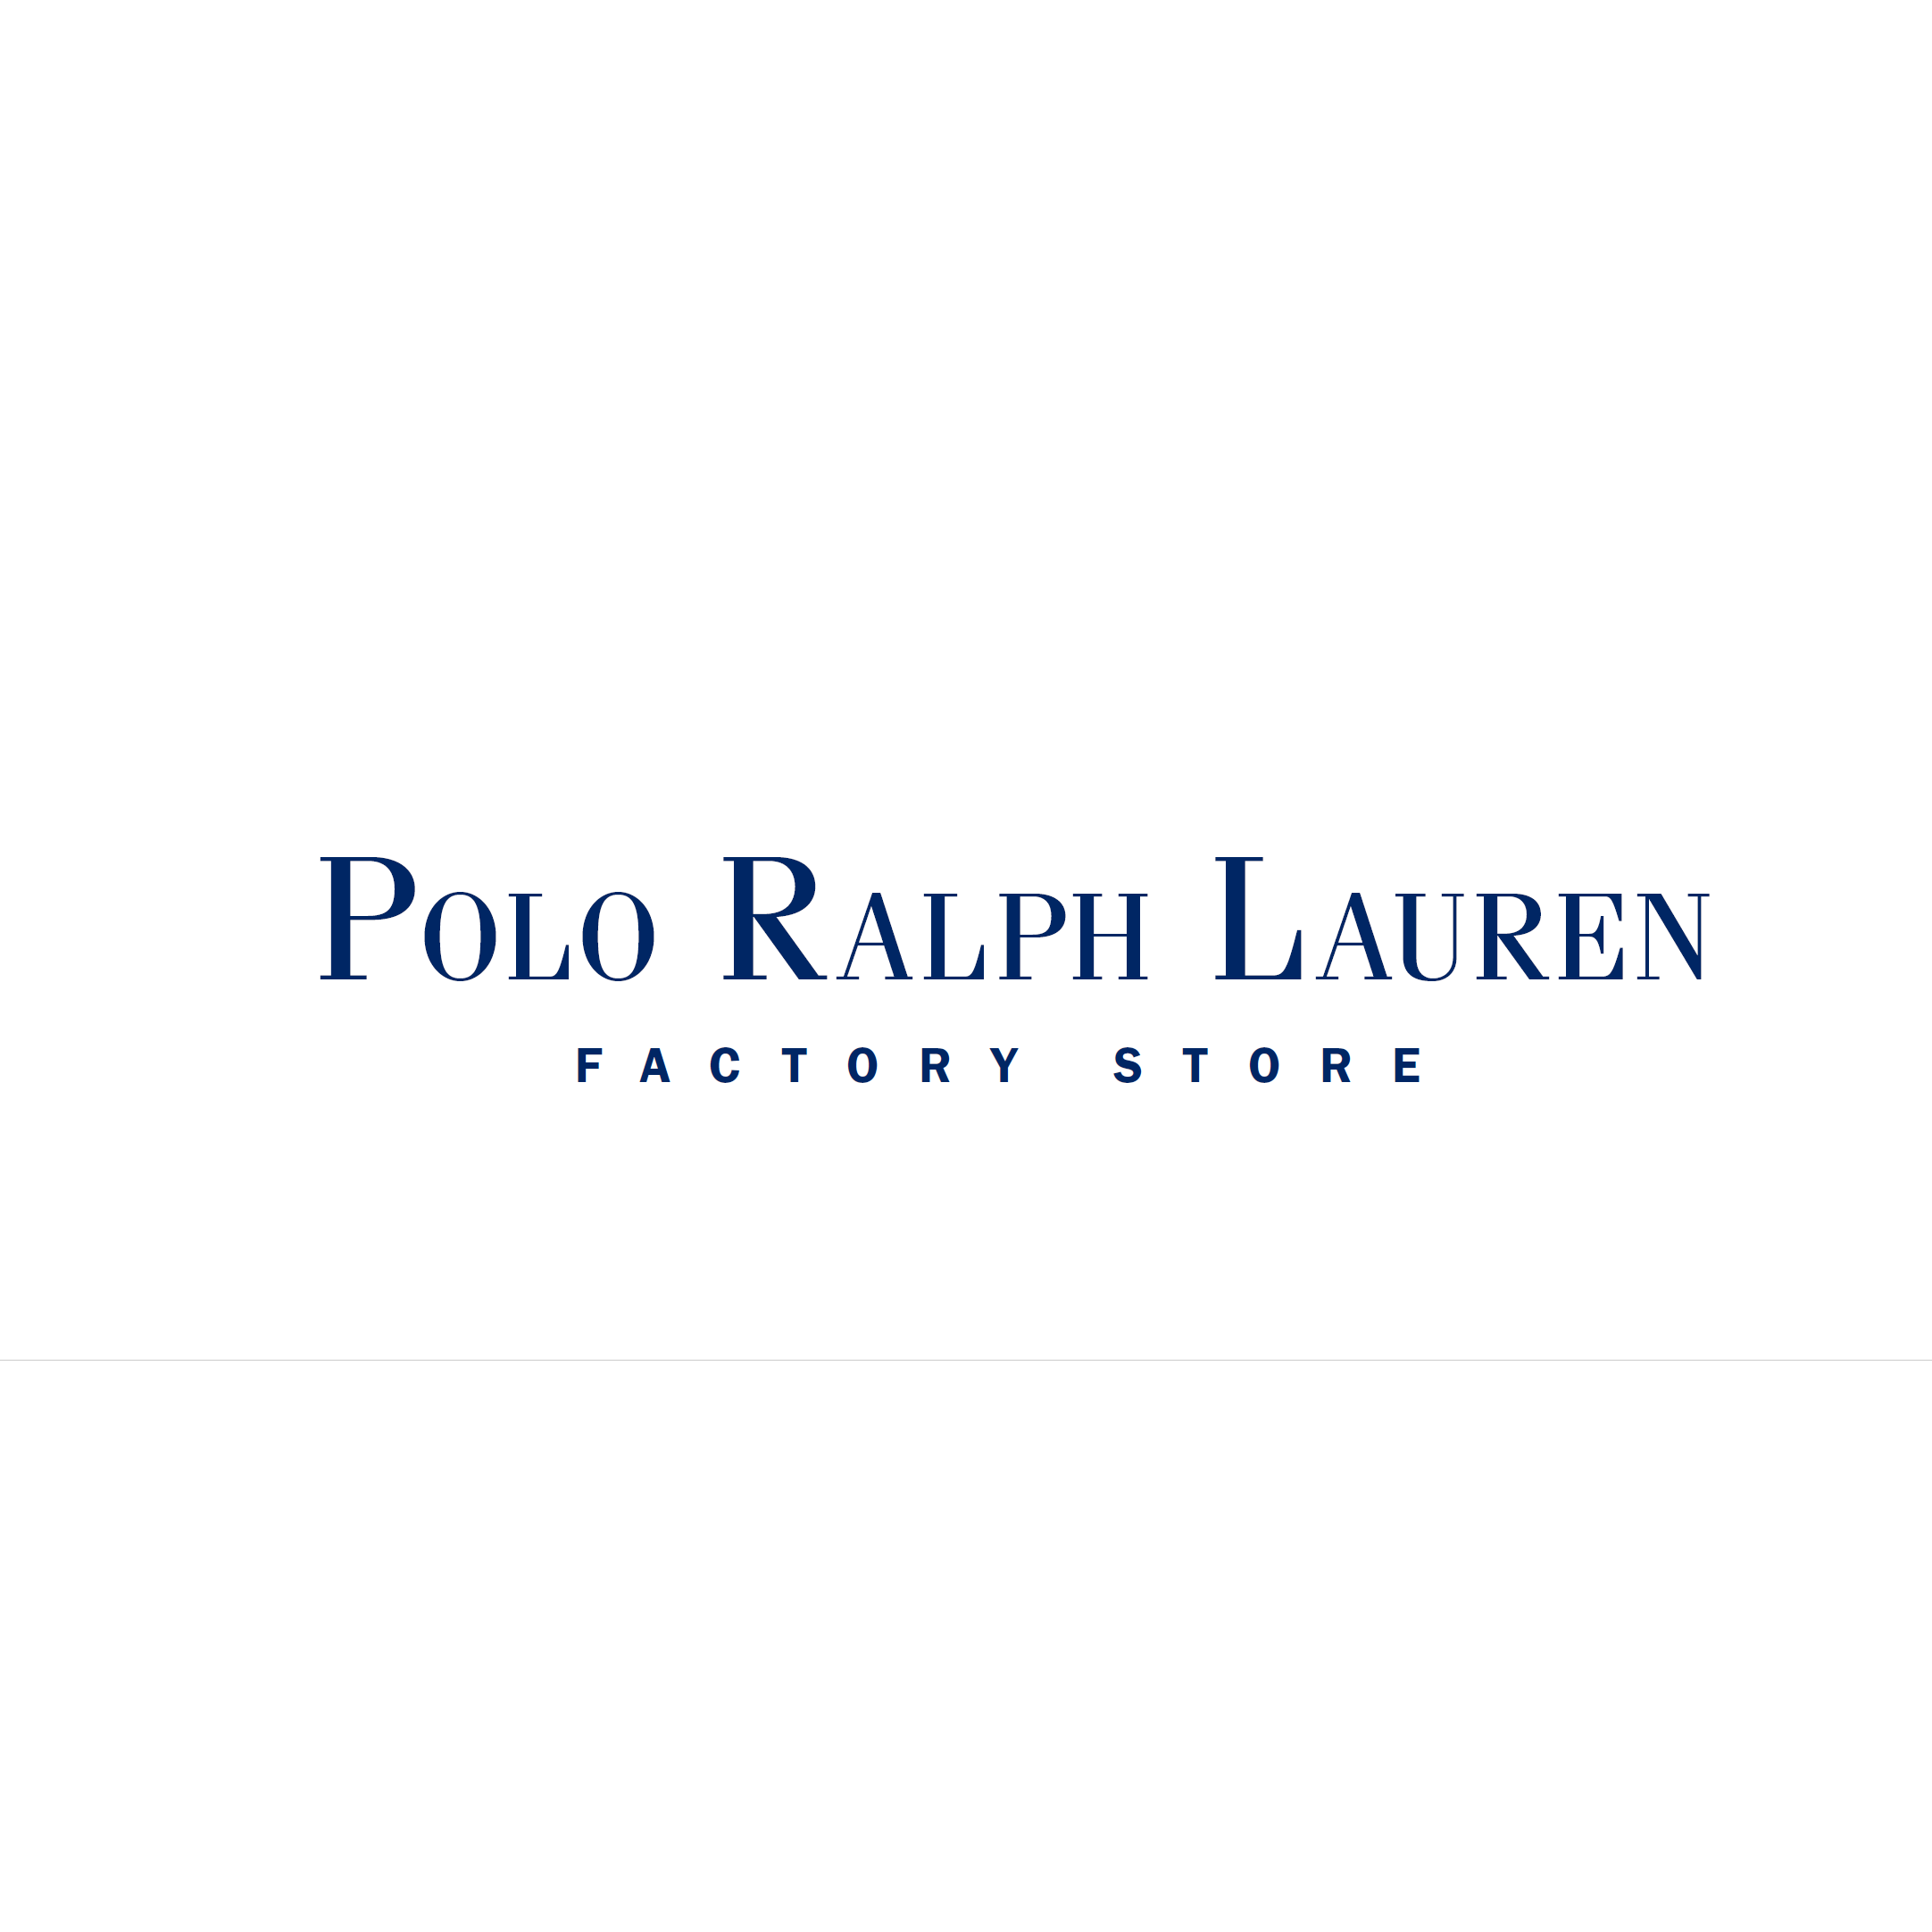 Polo Ralph Lauren Factory Store - Atlantic City, NJ - Apparel Stores